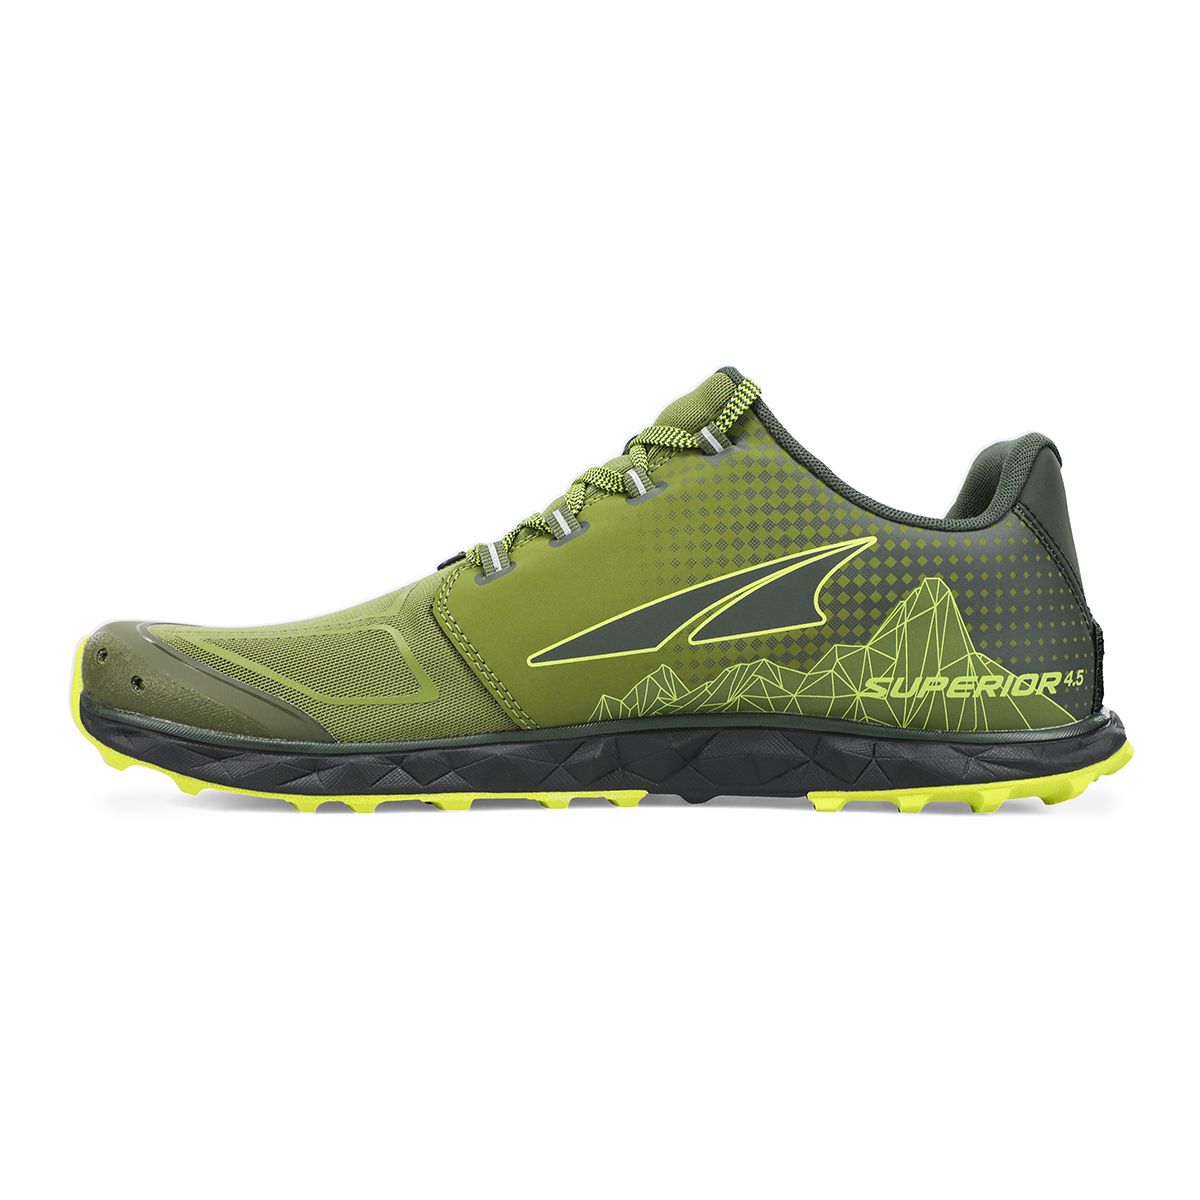 Men's Altra Superior 4.5 Trail Running Shoe - Color: Green/Lime - Size: 7 - Width: Regular, Green/Lime, large, image 2